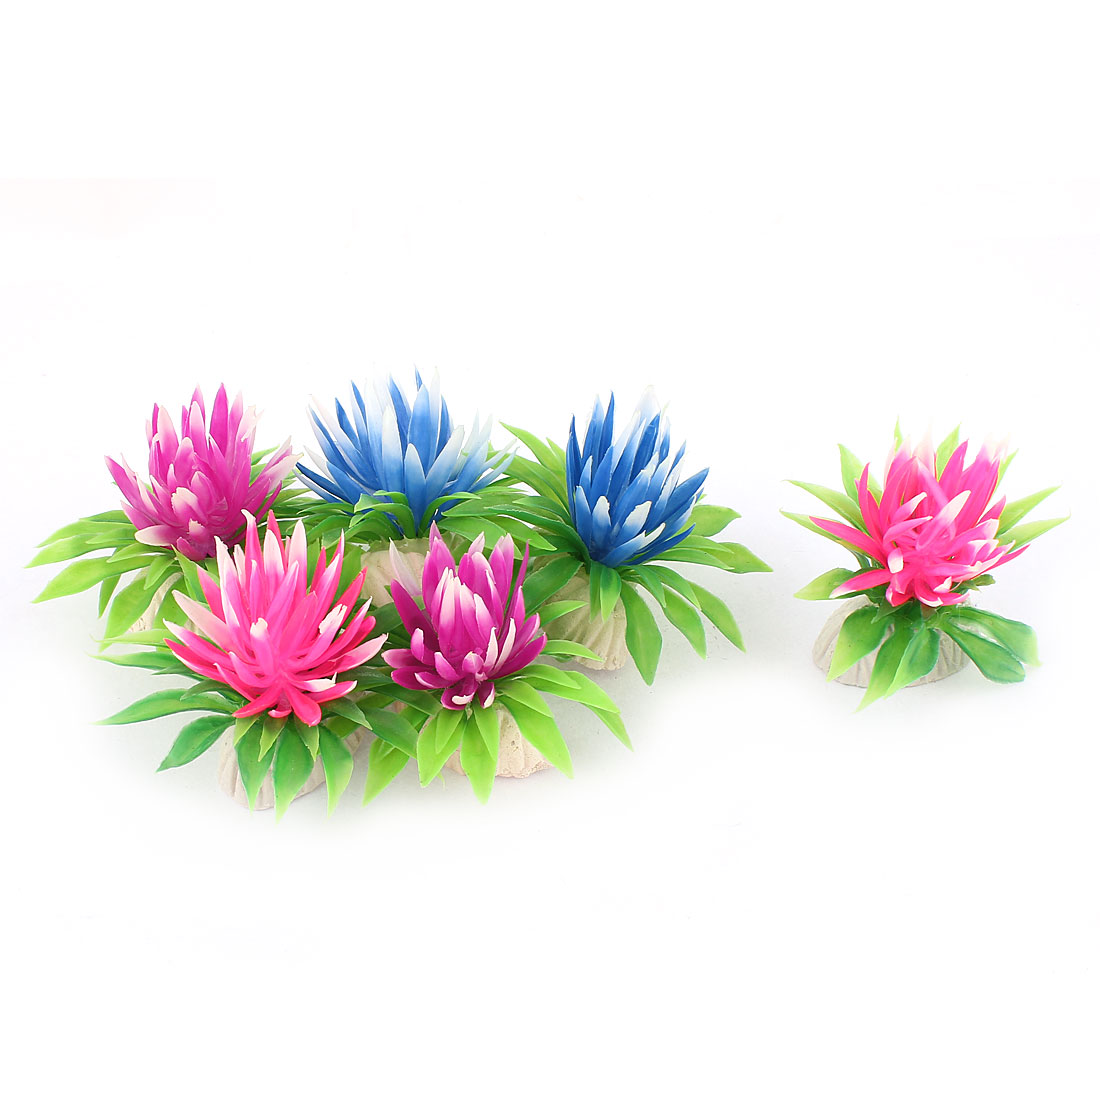 6pcs Artificial Underwater Aquarium Flower Plants Fish Tank Decor Assorted Color